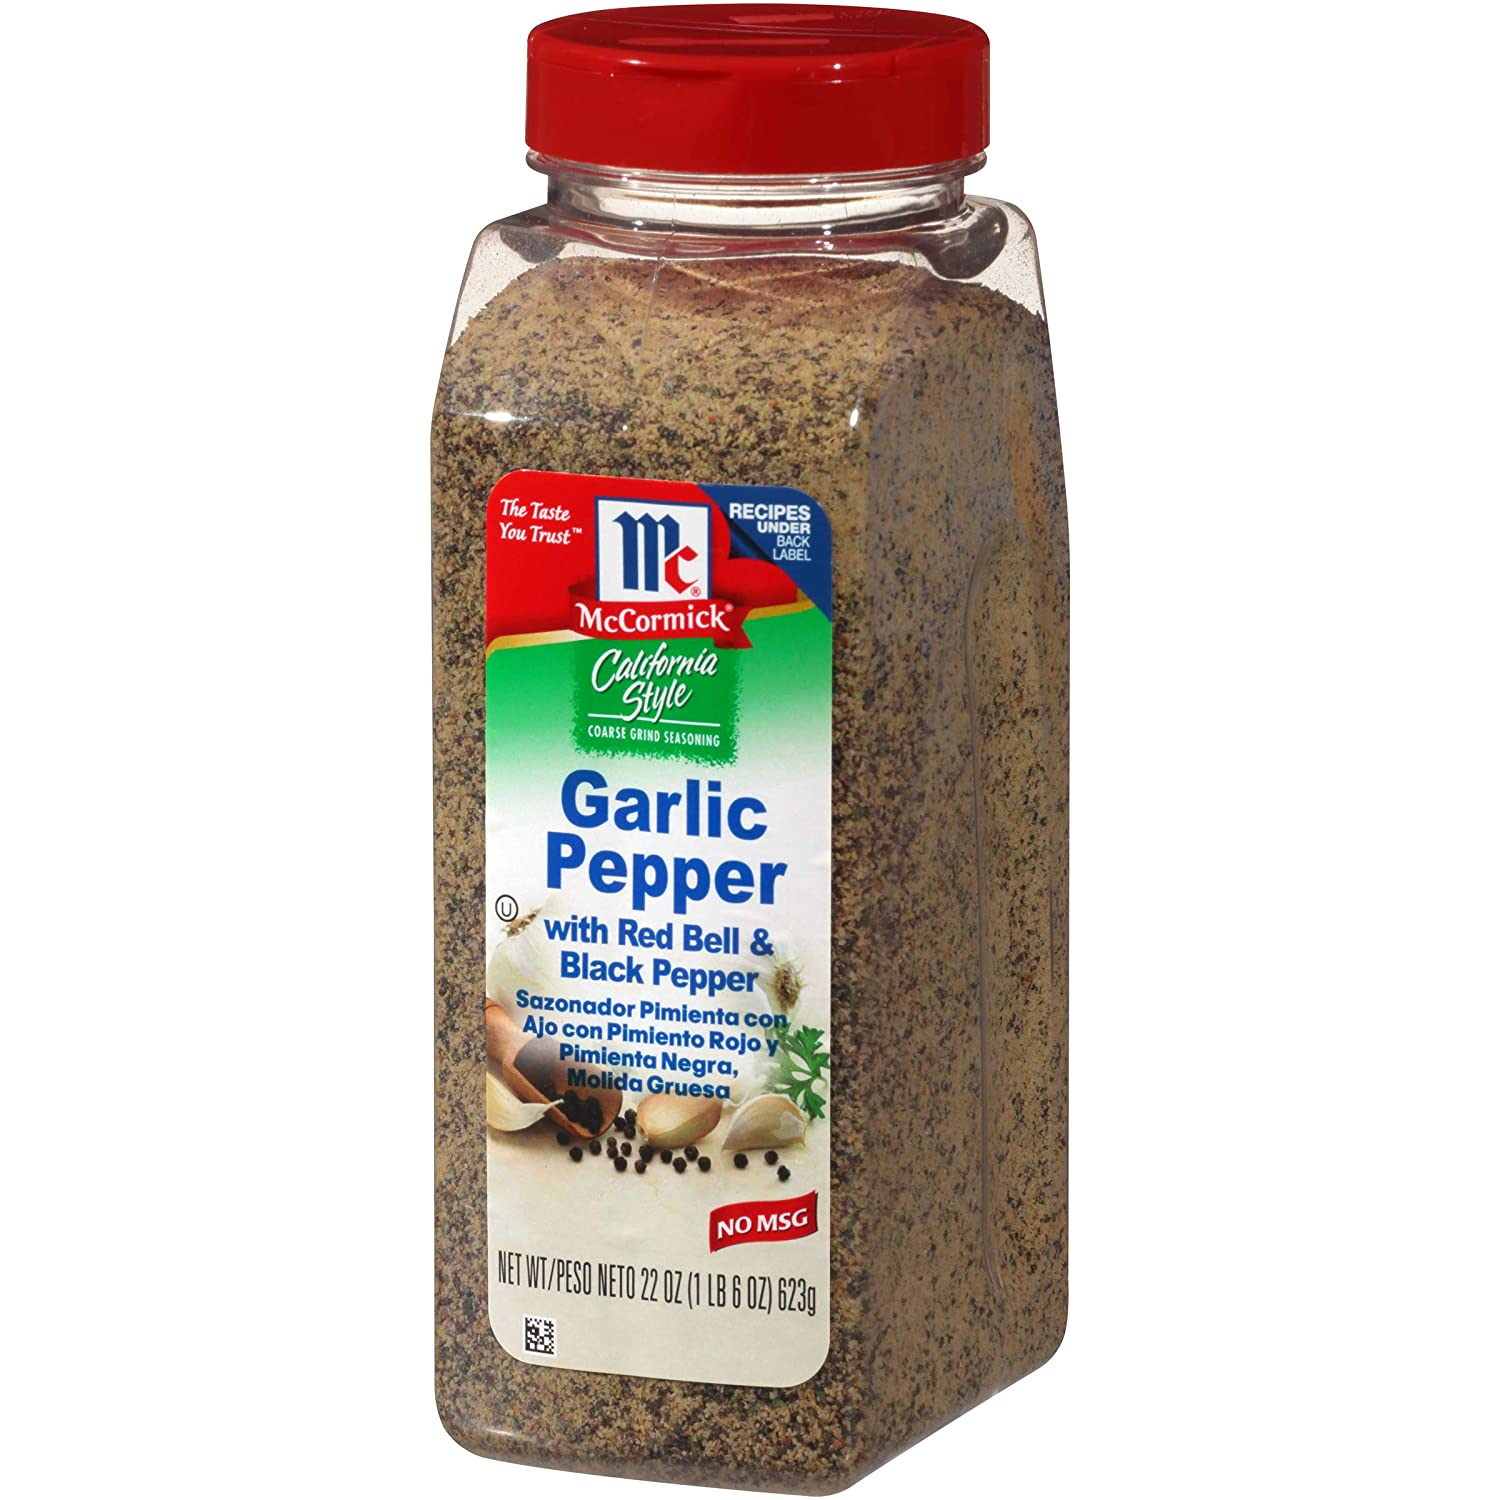 McCormick California Style Garlic Pepper with Red Bell & Black Pepper Coarse Grind Seasoning, 22 Ounce